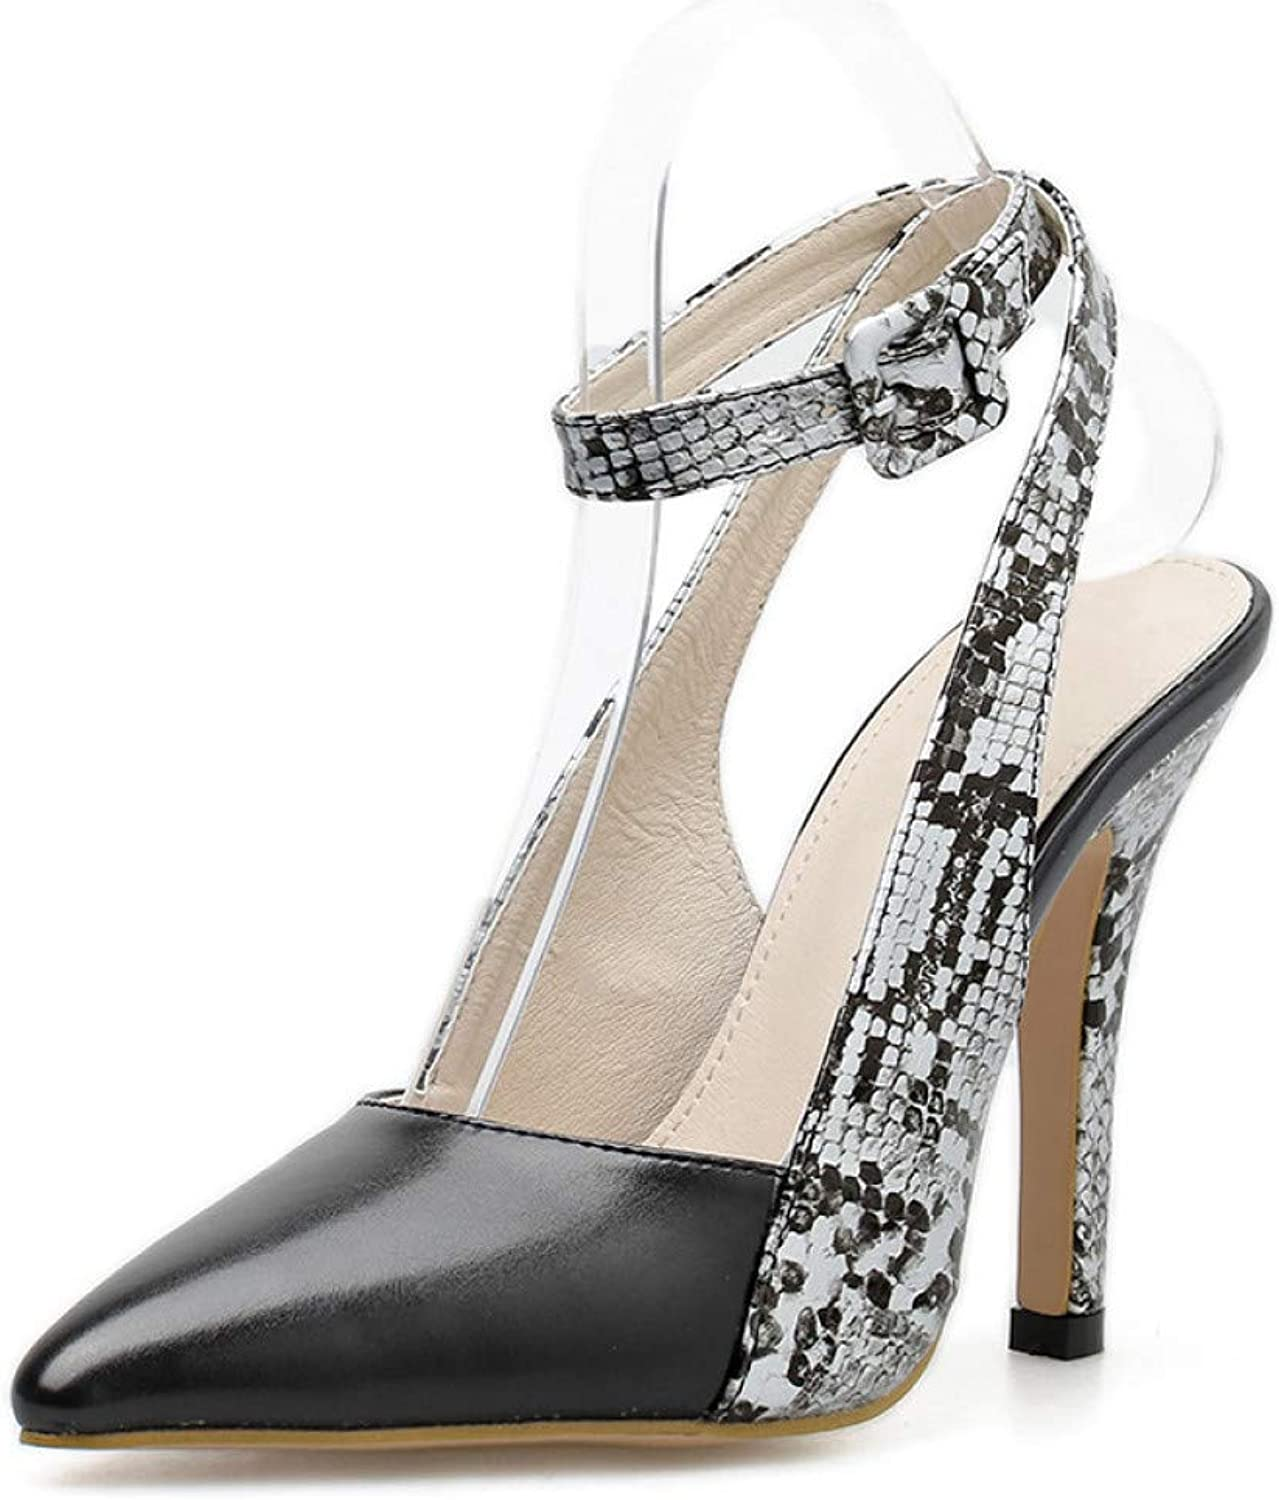 GHIJN High Heels Spring Autumn Party Pumps Pointed Toe Stiletto Iron High Heel Slingback Buckle Strap Ladies shoes